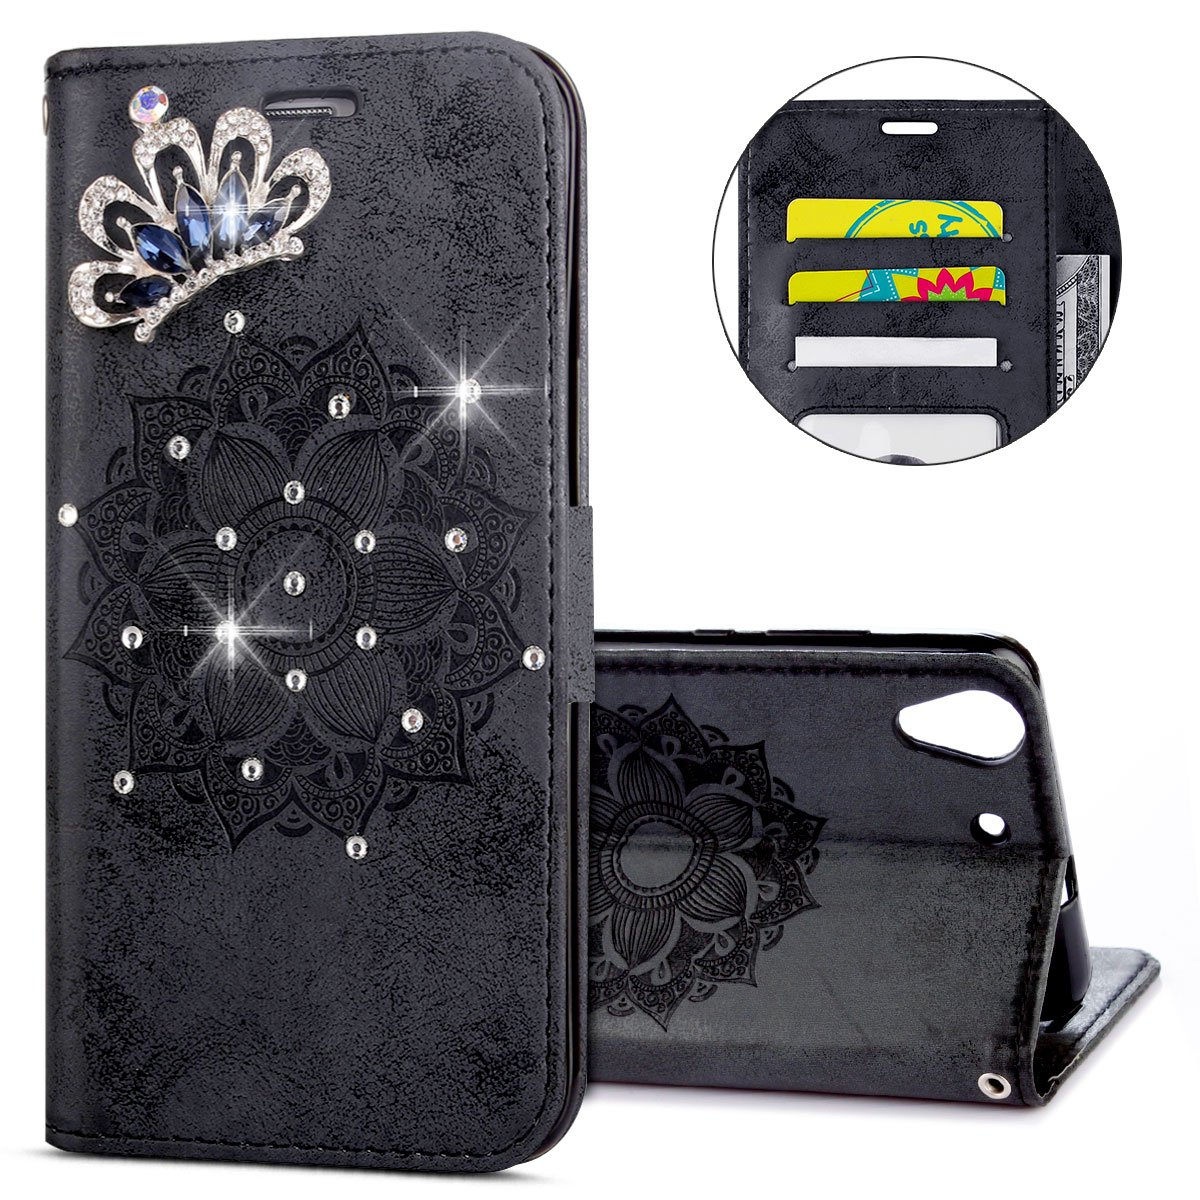 IKASEFU Huawei Y6 II Case,3D Clear Crown Rhinestone Diamond Bling Glitter Wallet with Card Holder Emboss Mandala Floral Pu Leather Magnetic Flip Case Protective Cover for Huawei Y6 II,Black